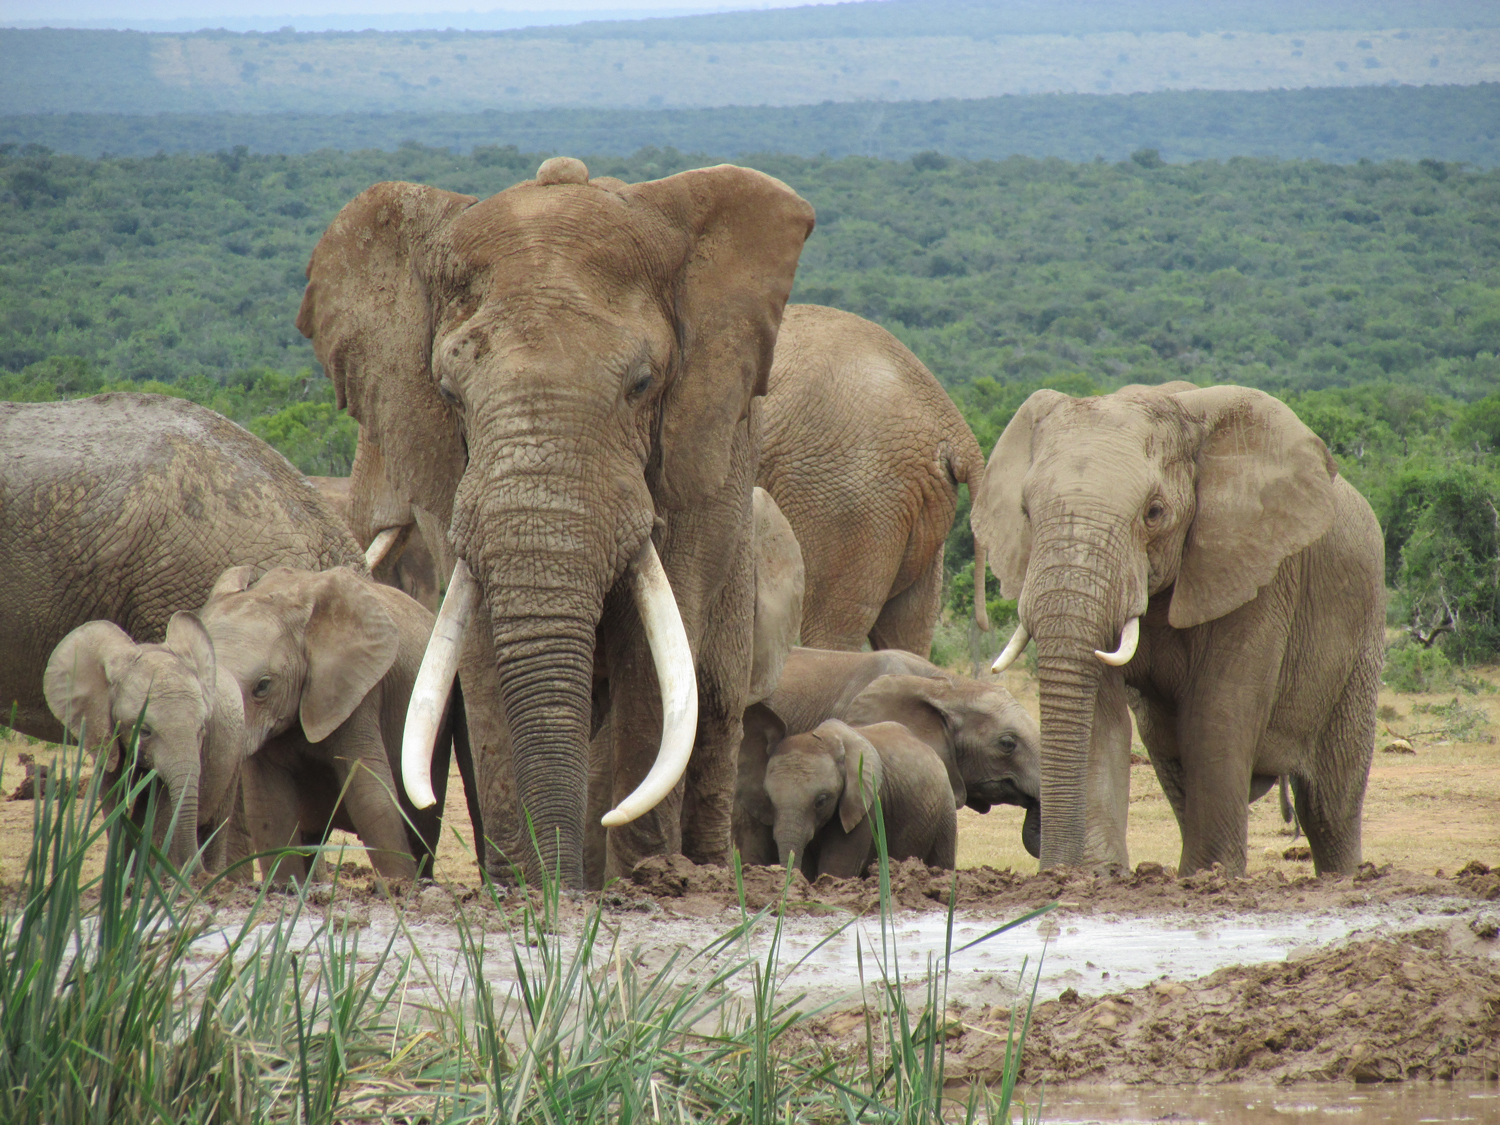 Addo-Elephant-National-Park-Exclusive-Tours-elephants-close-up-1